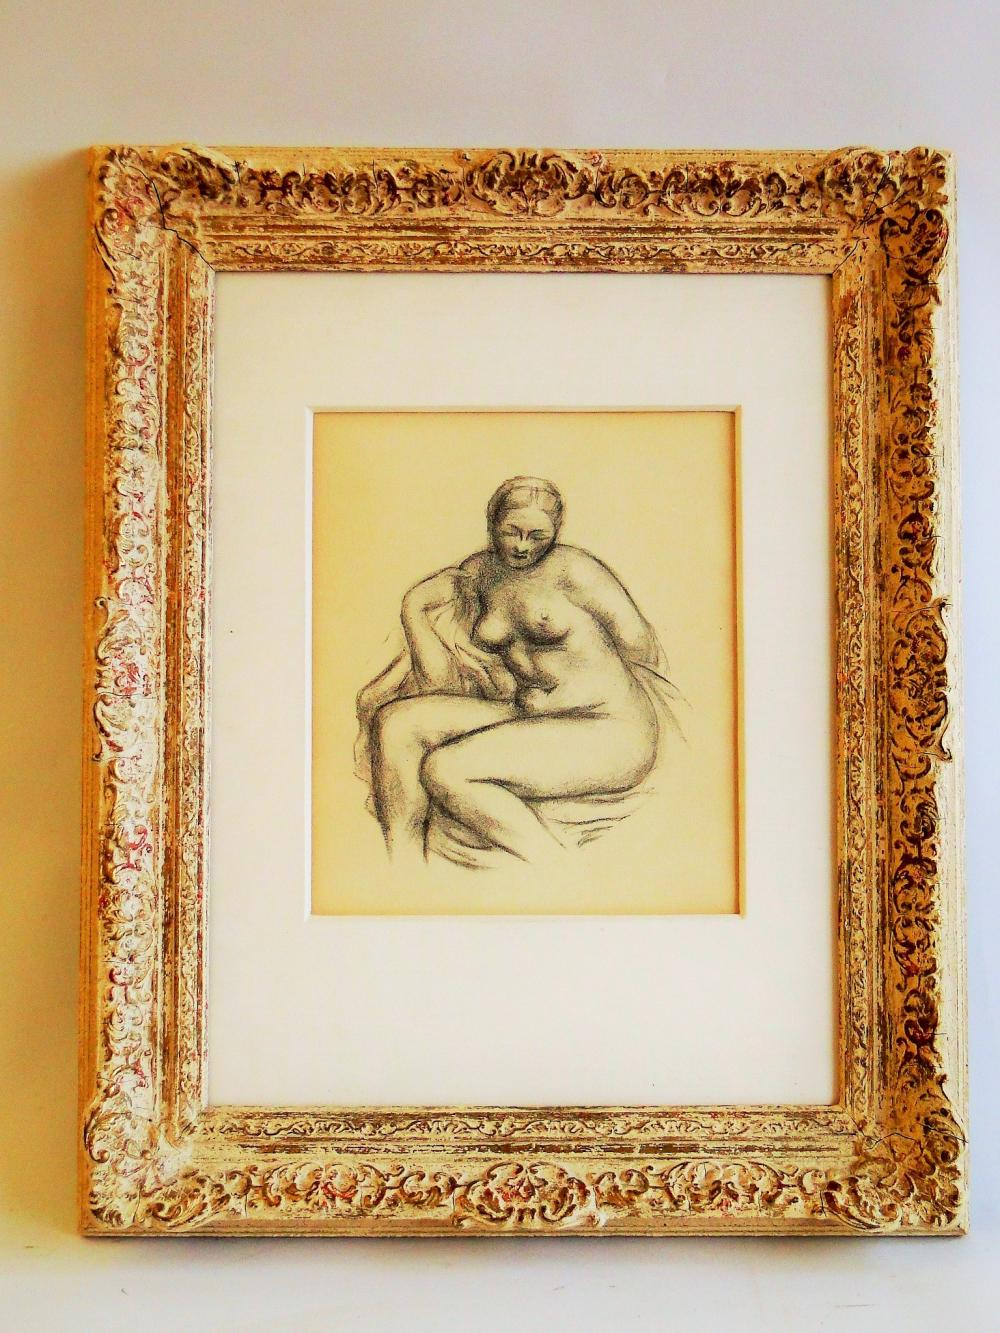 LITHOGRAPH OF A NUDE BY ARISTIDE MAILLOL